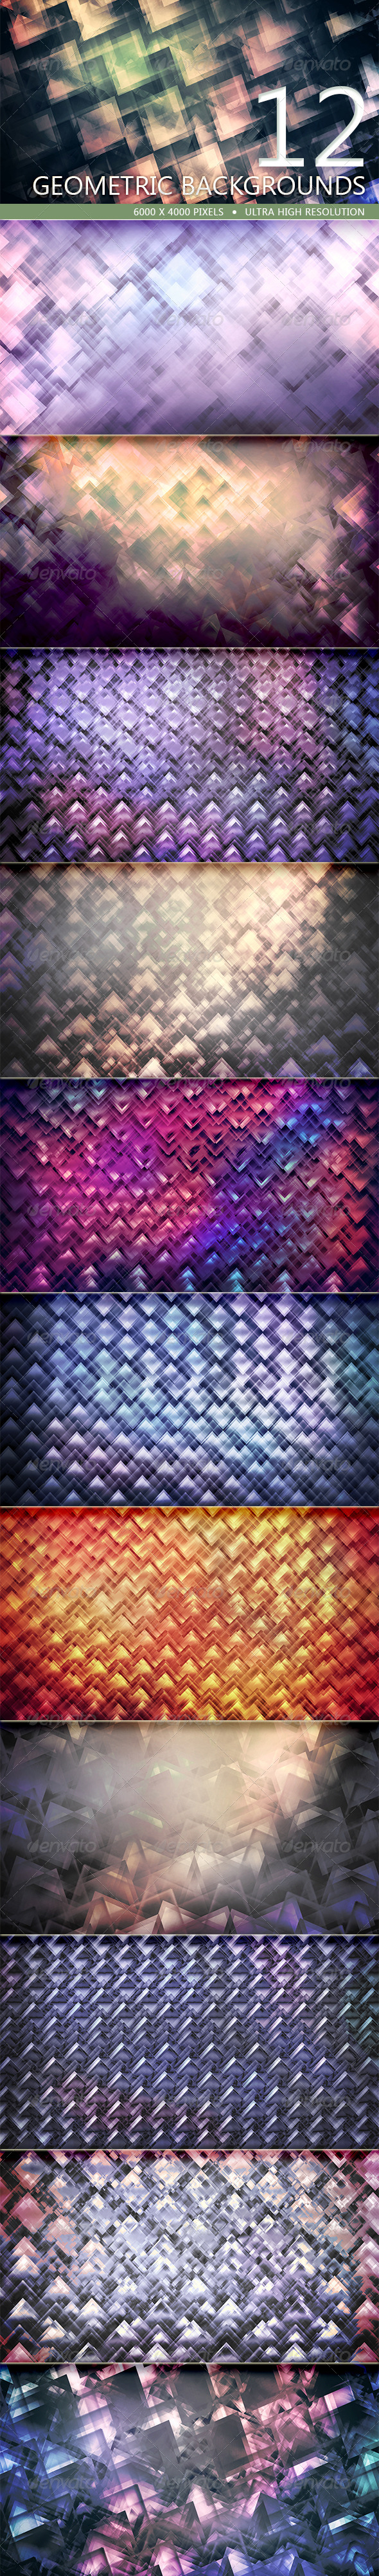 GraphicRiver Geometric Backgrounds Volume 1 5197414